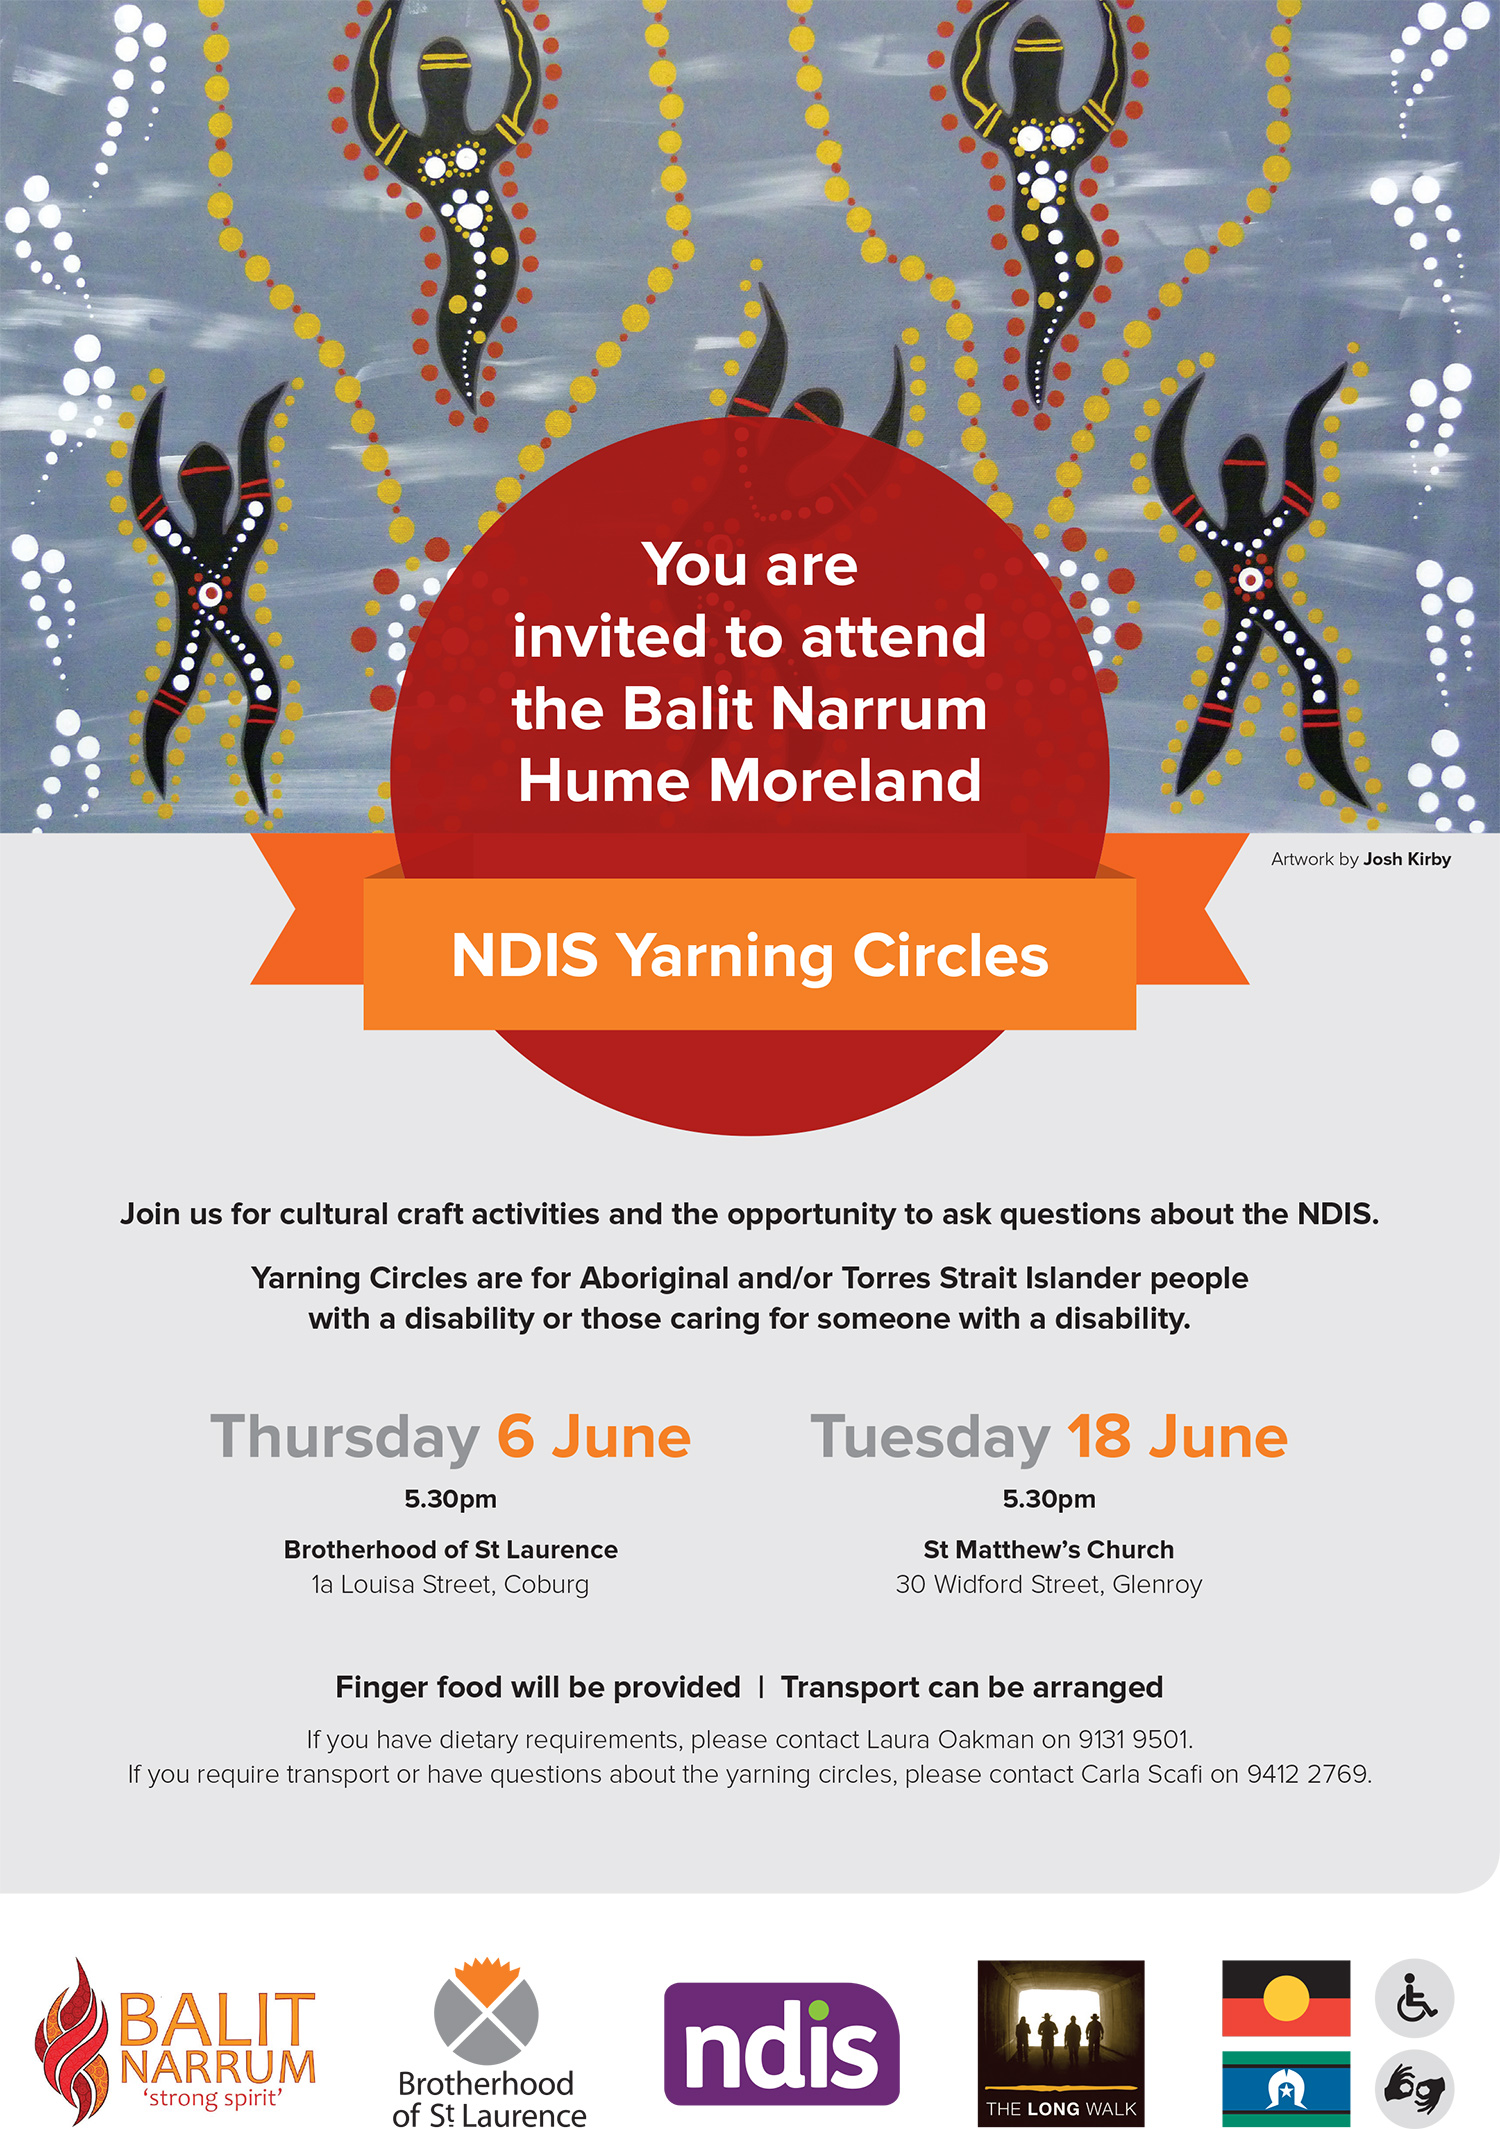 NDIS Yarning Circle Poster